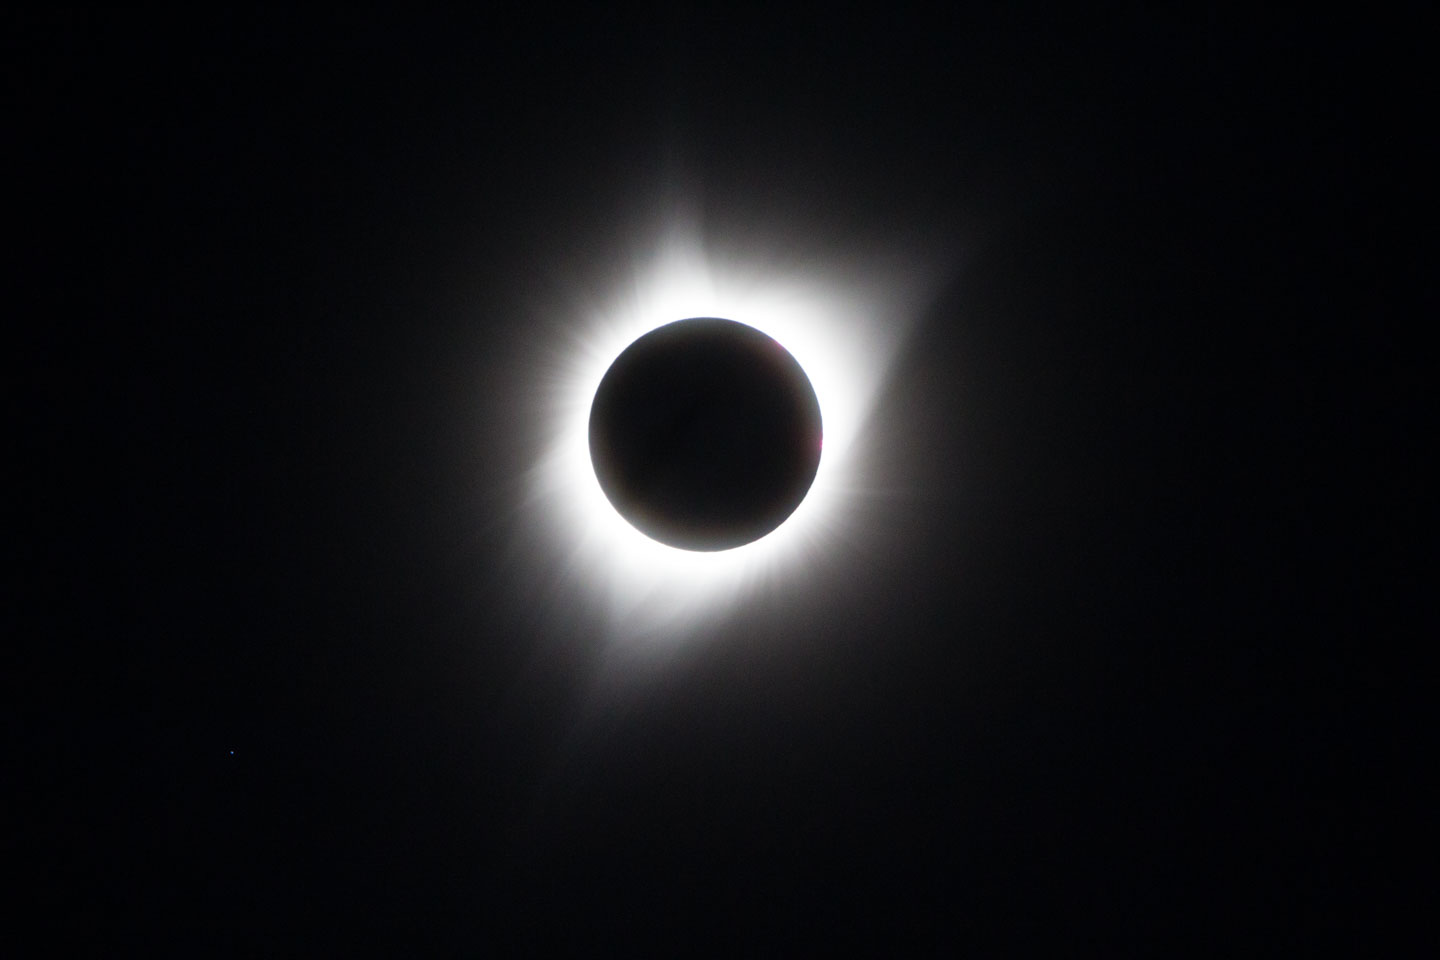 Total eclipse as seen by the camera